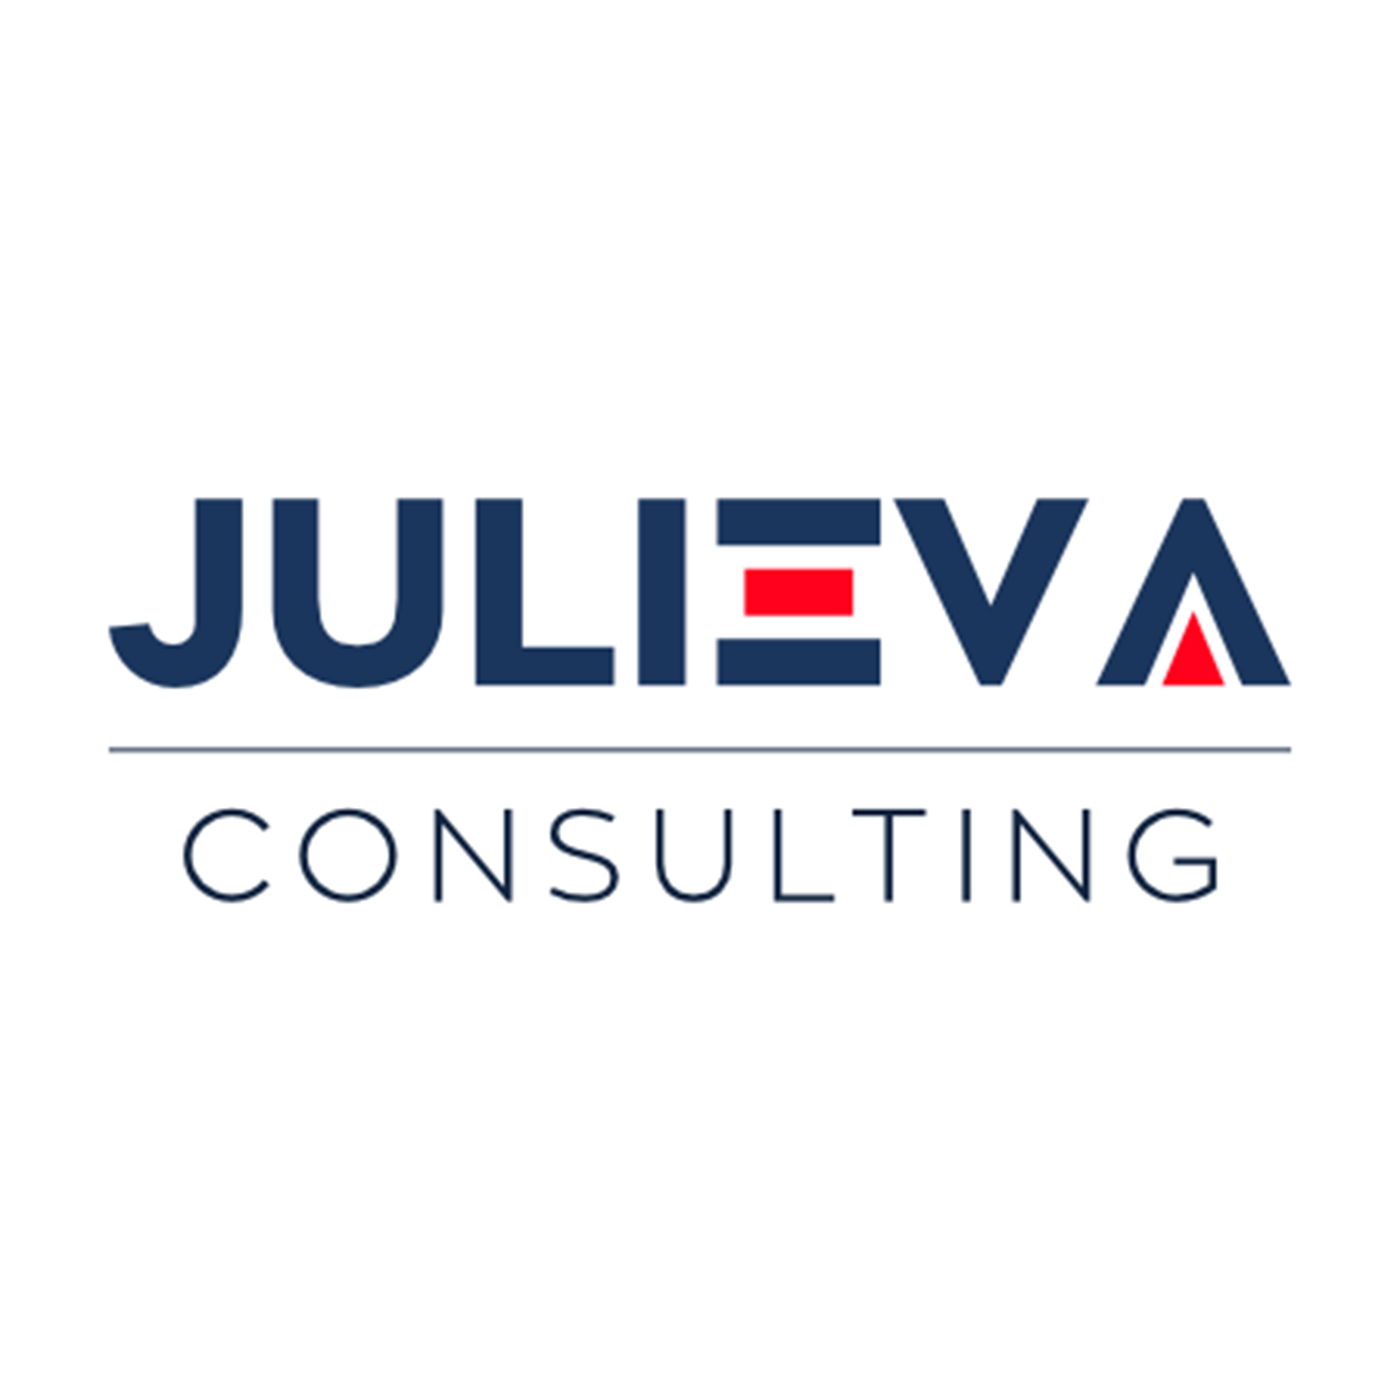 Younes Heymans - Julieva consulting